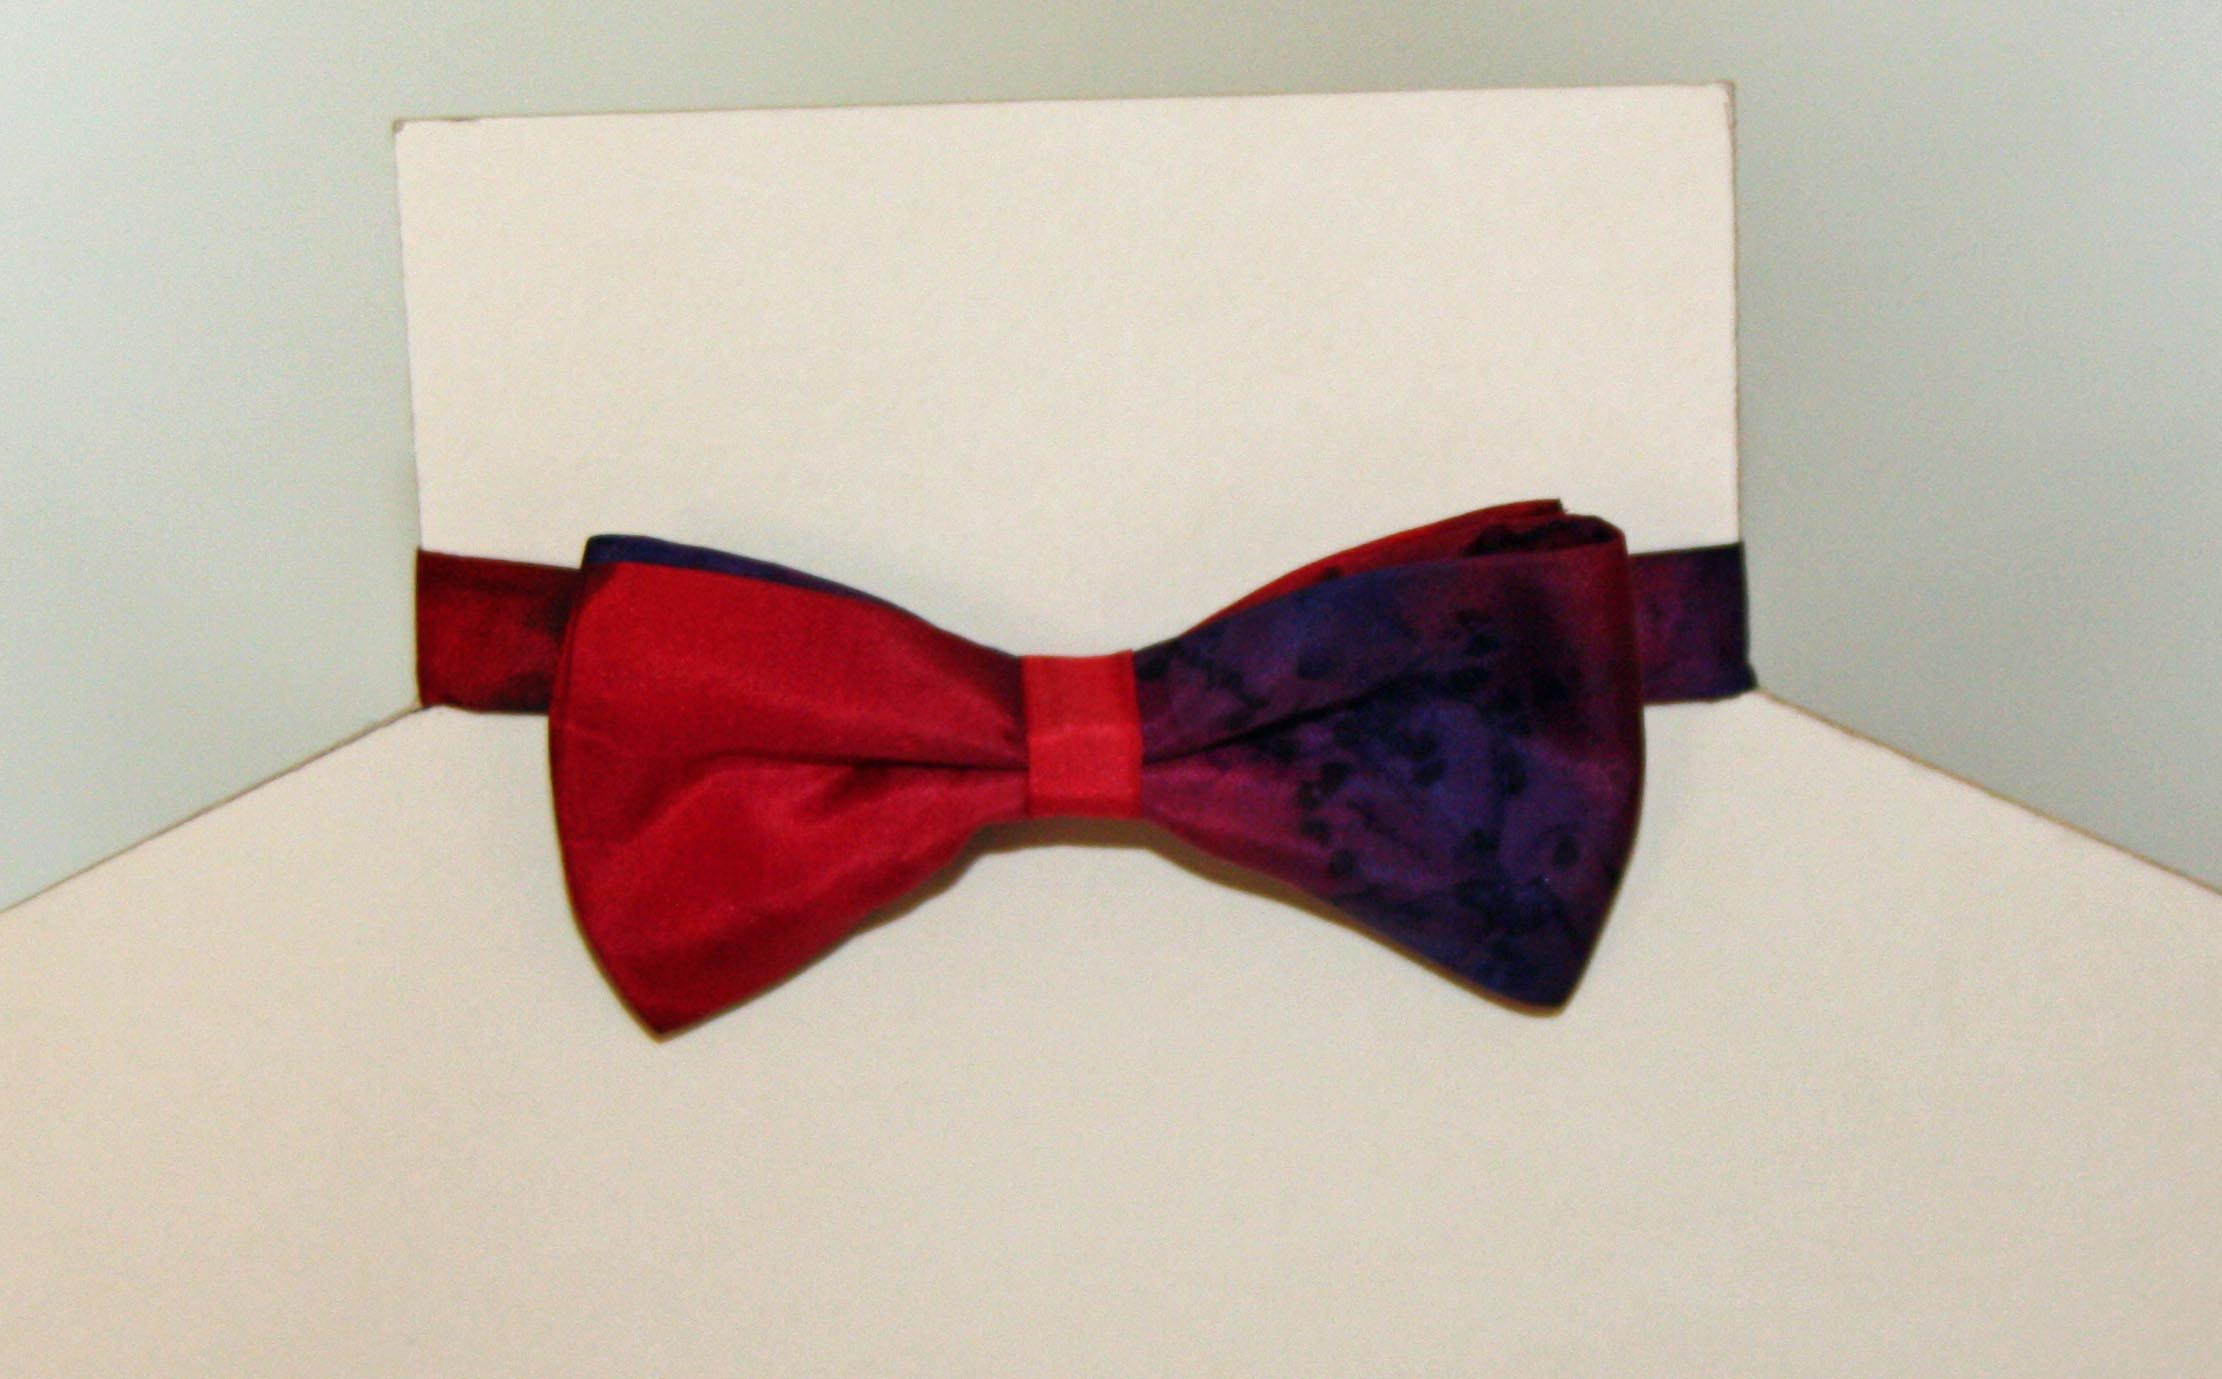 Red and Navy Blue Silk Bow Tie